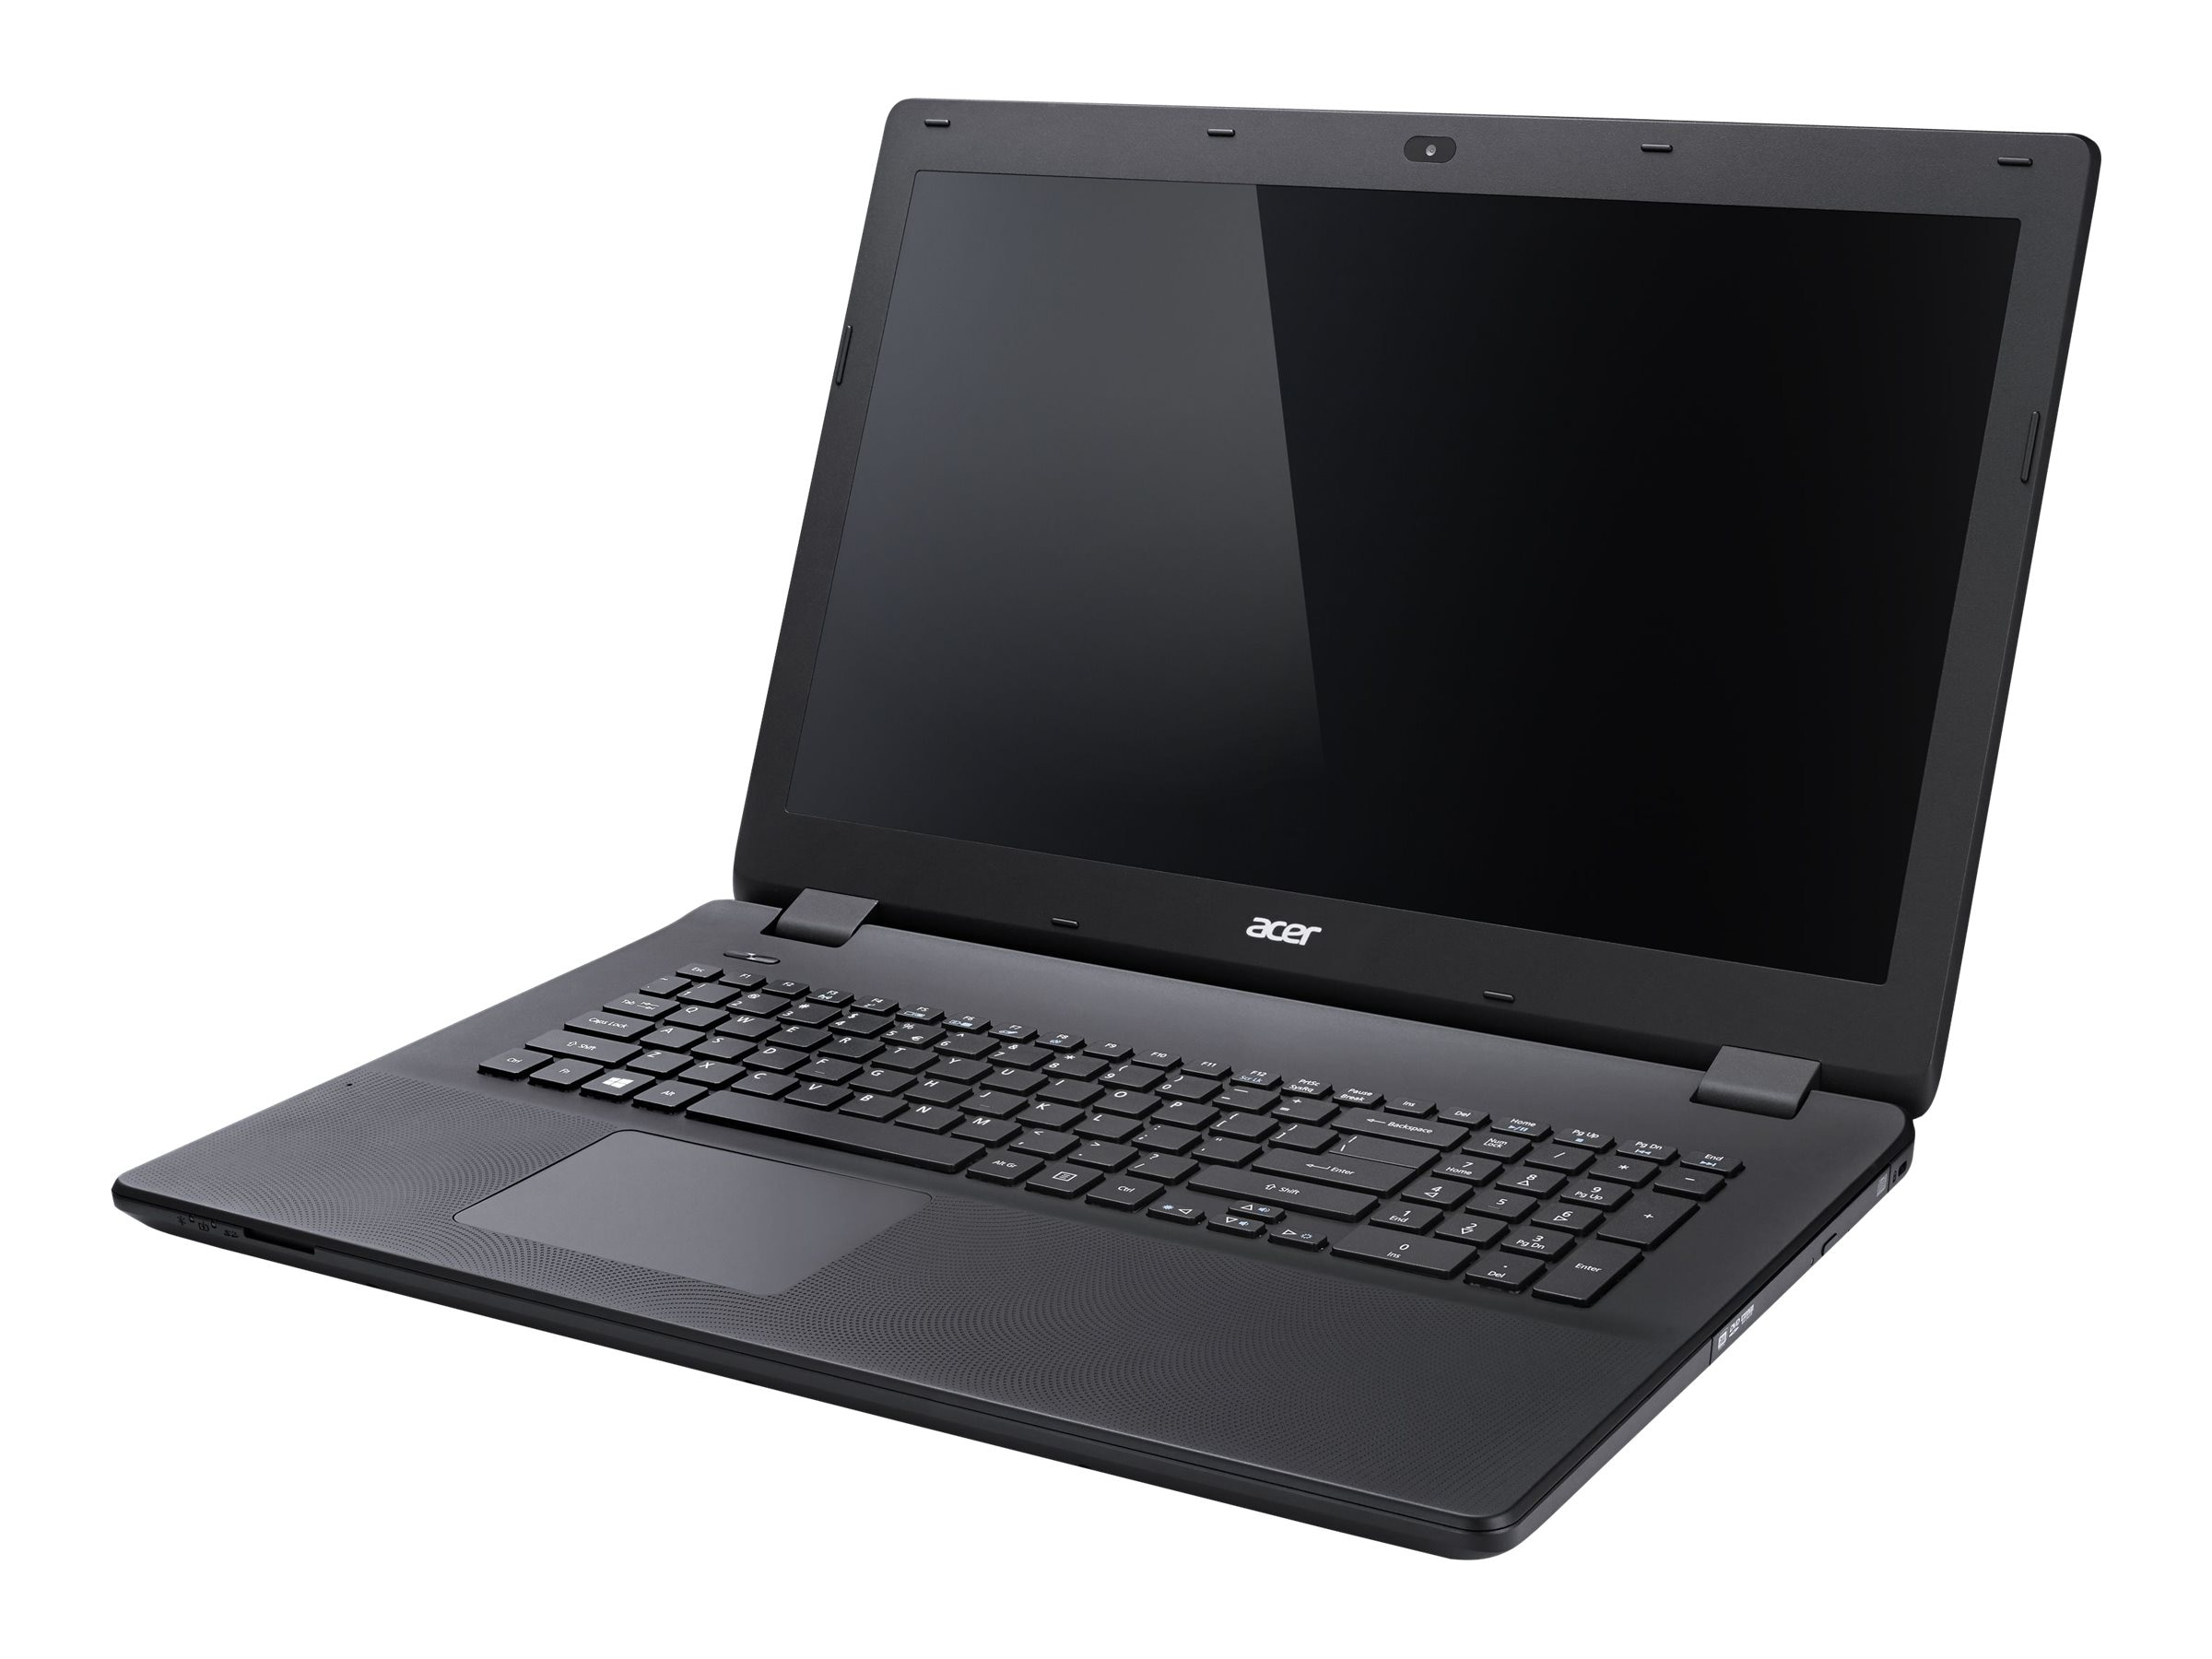 Acer Aspire ES1-711-P14W 17.3 Notebook PC, NX.MS2AA.004, 17976296, Notebooks